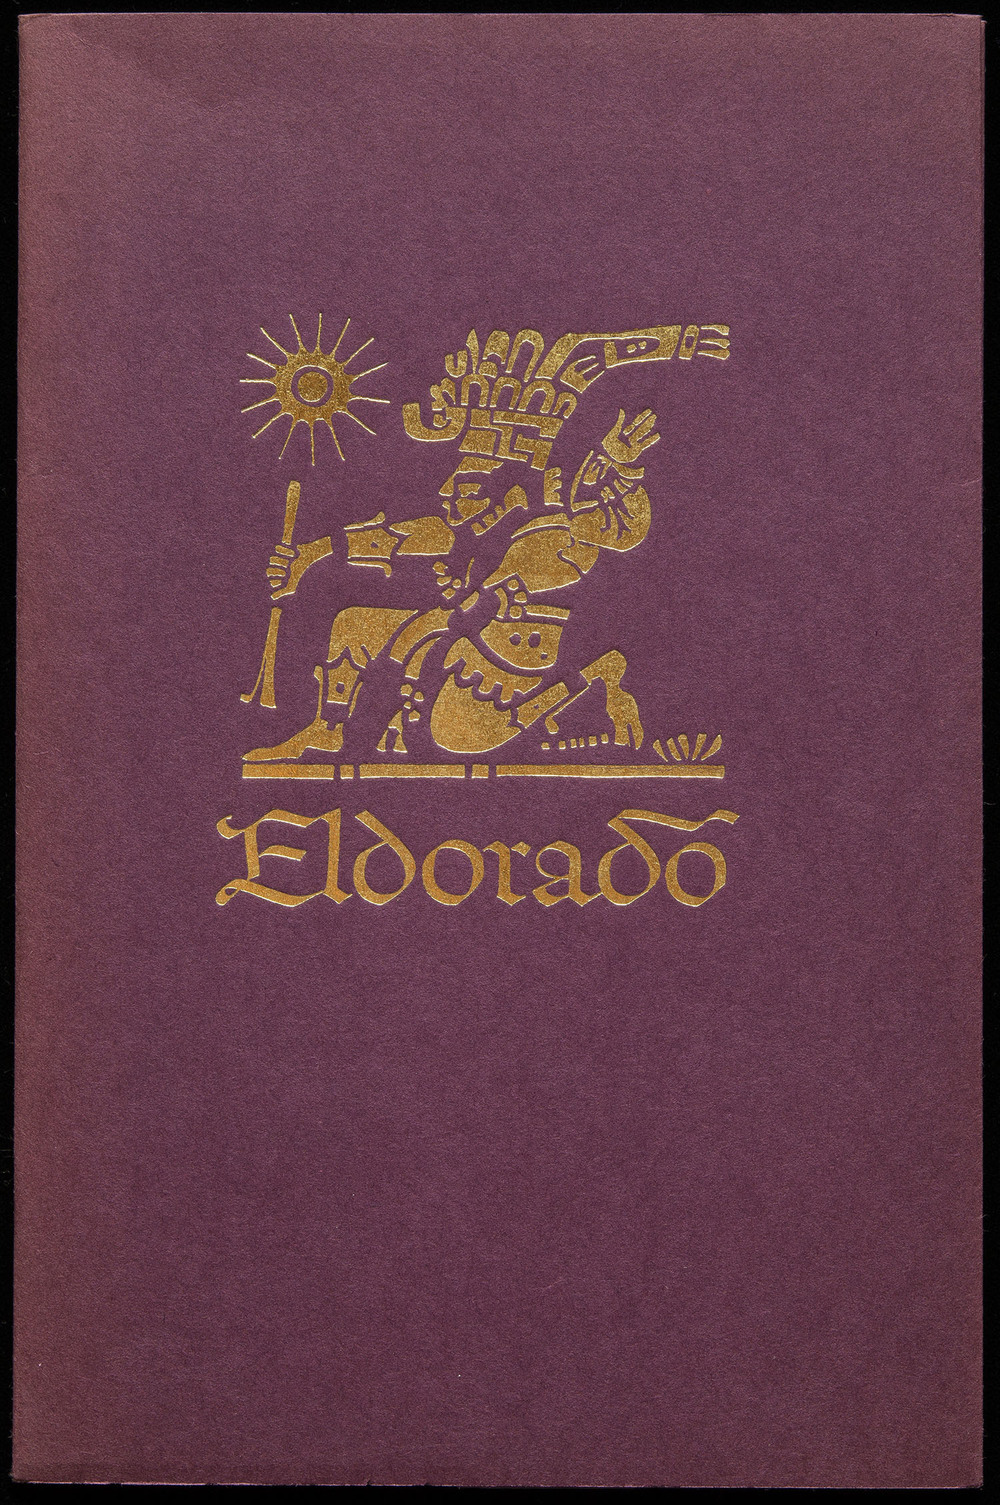 Eldorado  type specimen booklet, Mergenthaler Linotype, Brooklyn, 1953, 14 x 21 cm